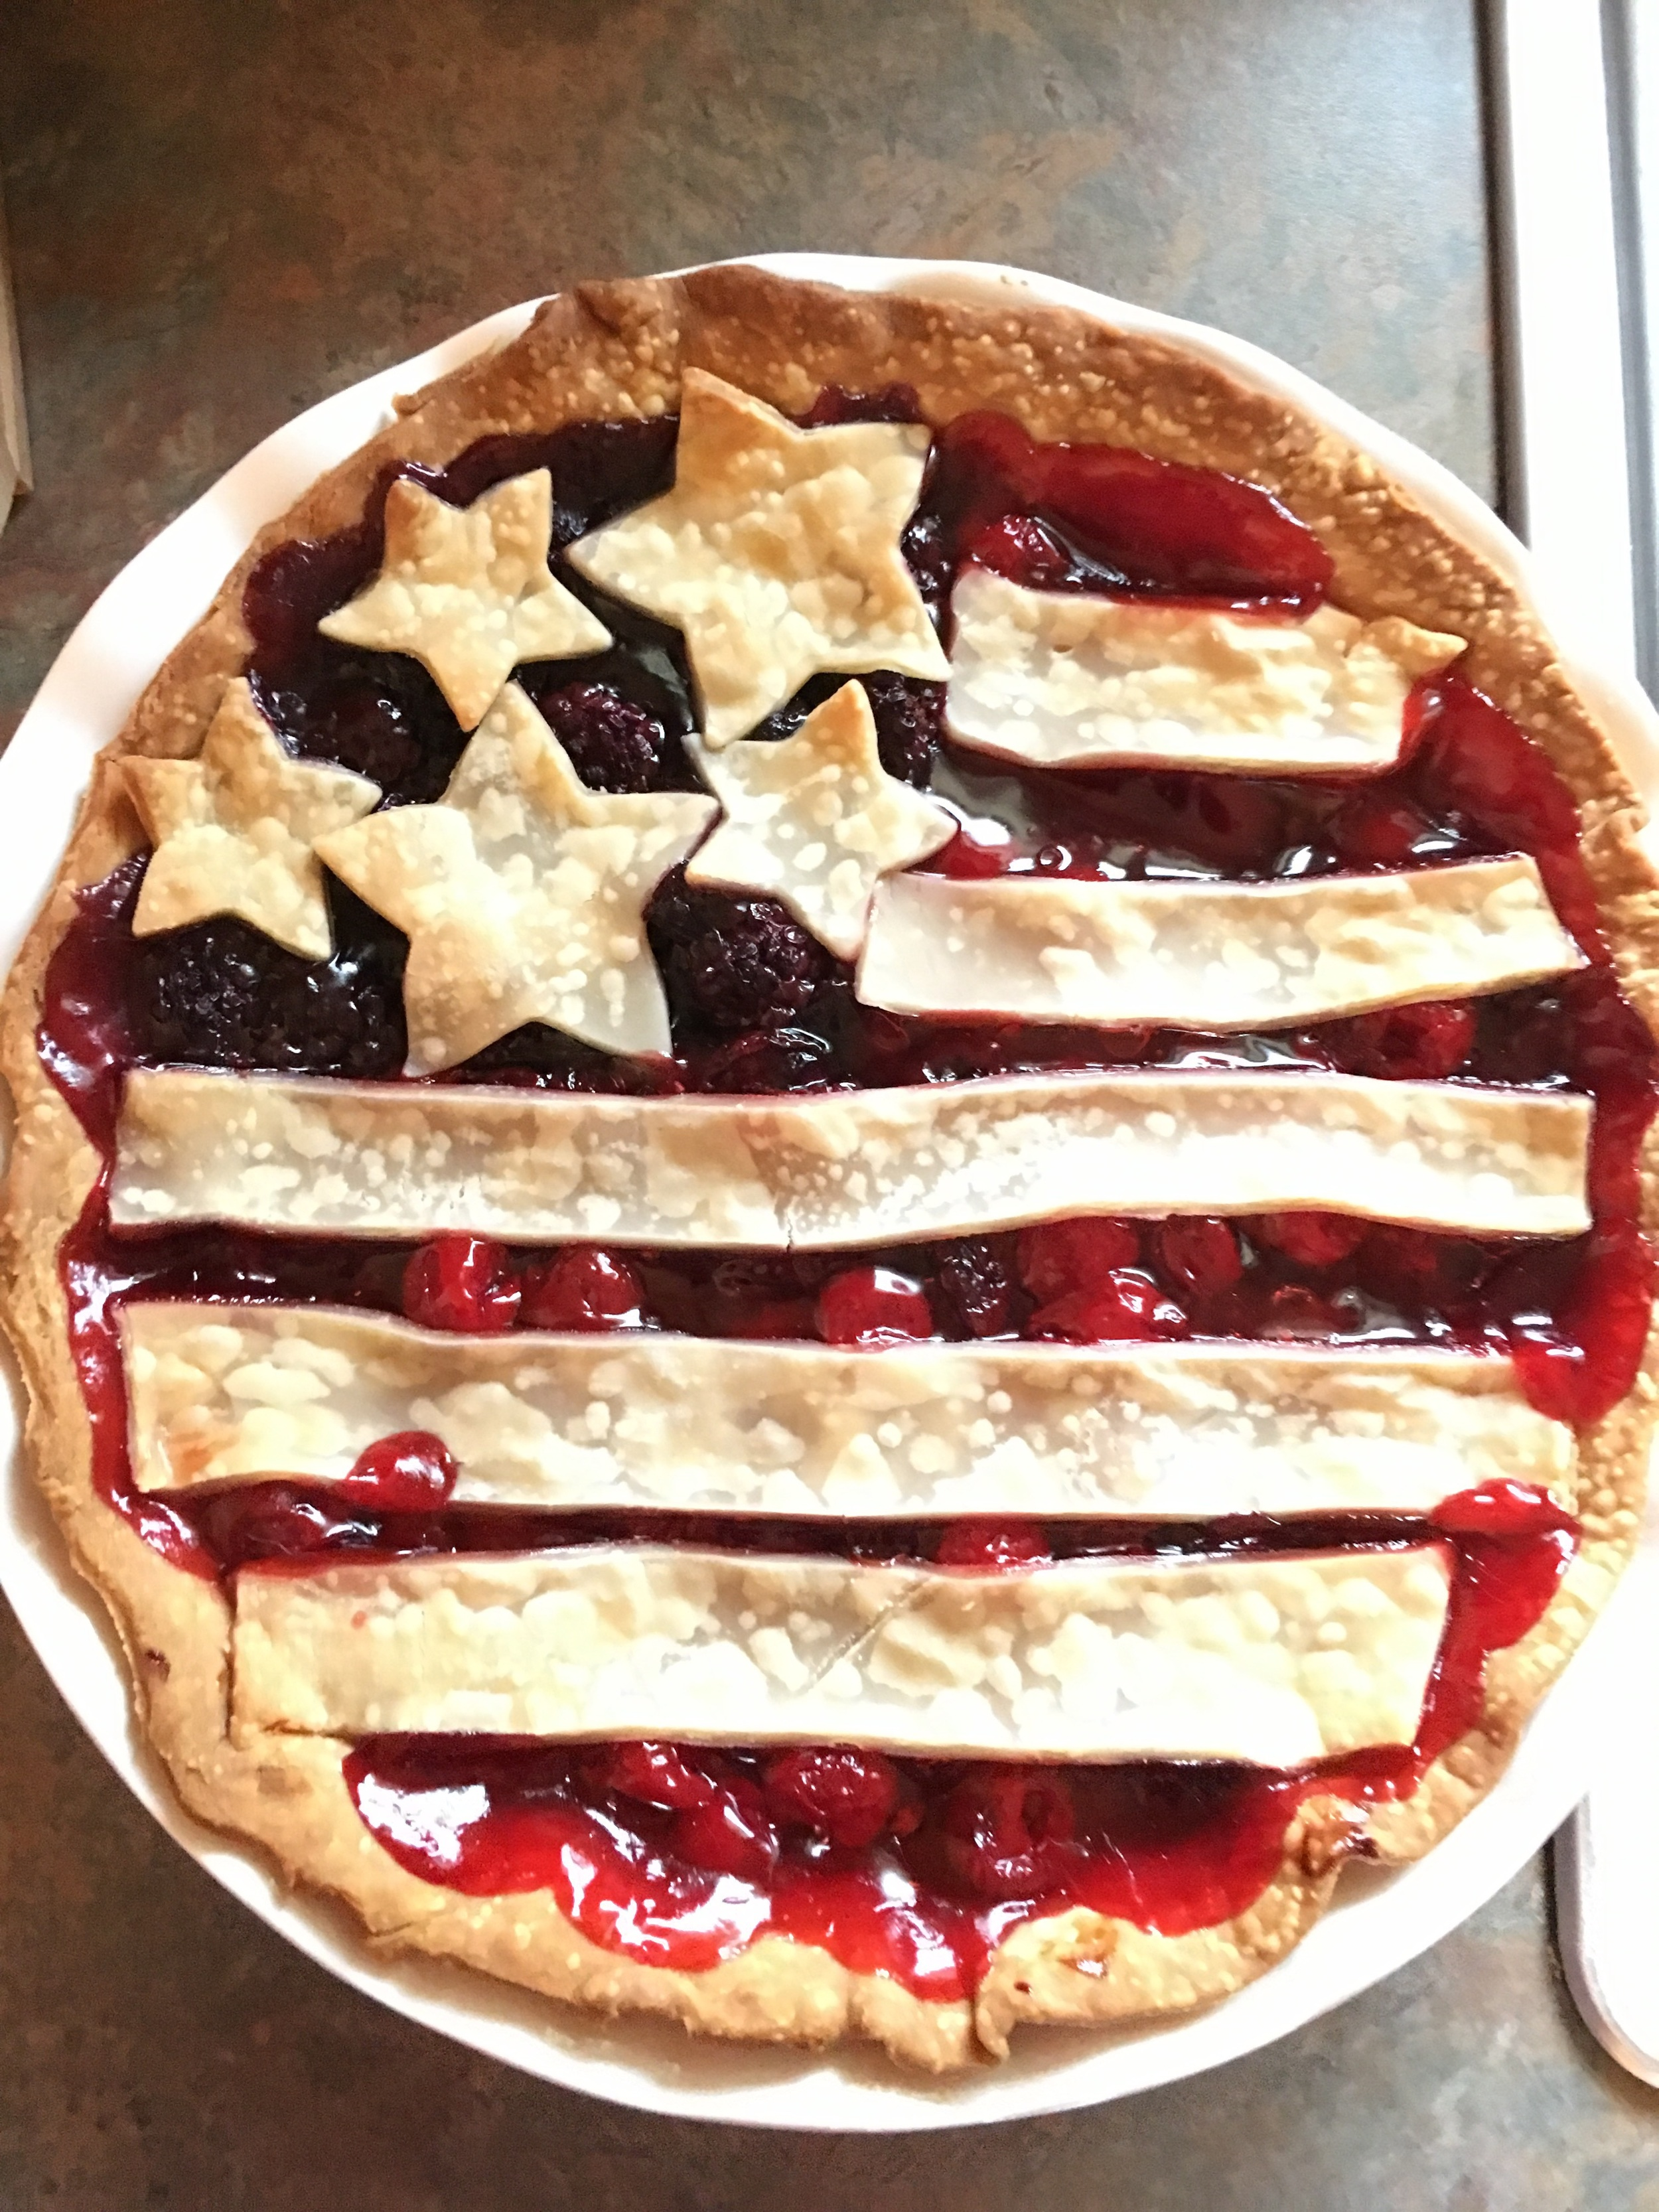 My friend Laura made this beautiful pie! Everything she cooks in just incredible. She's got skills! Hopefully I can make a pie like this next time 😍!